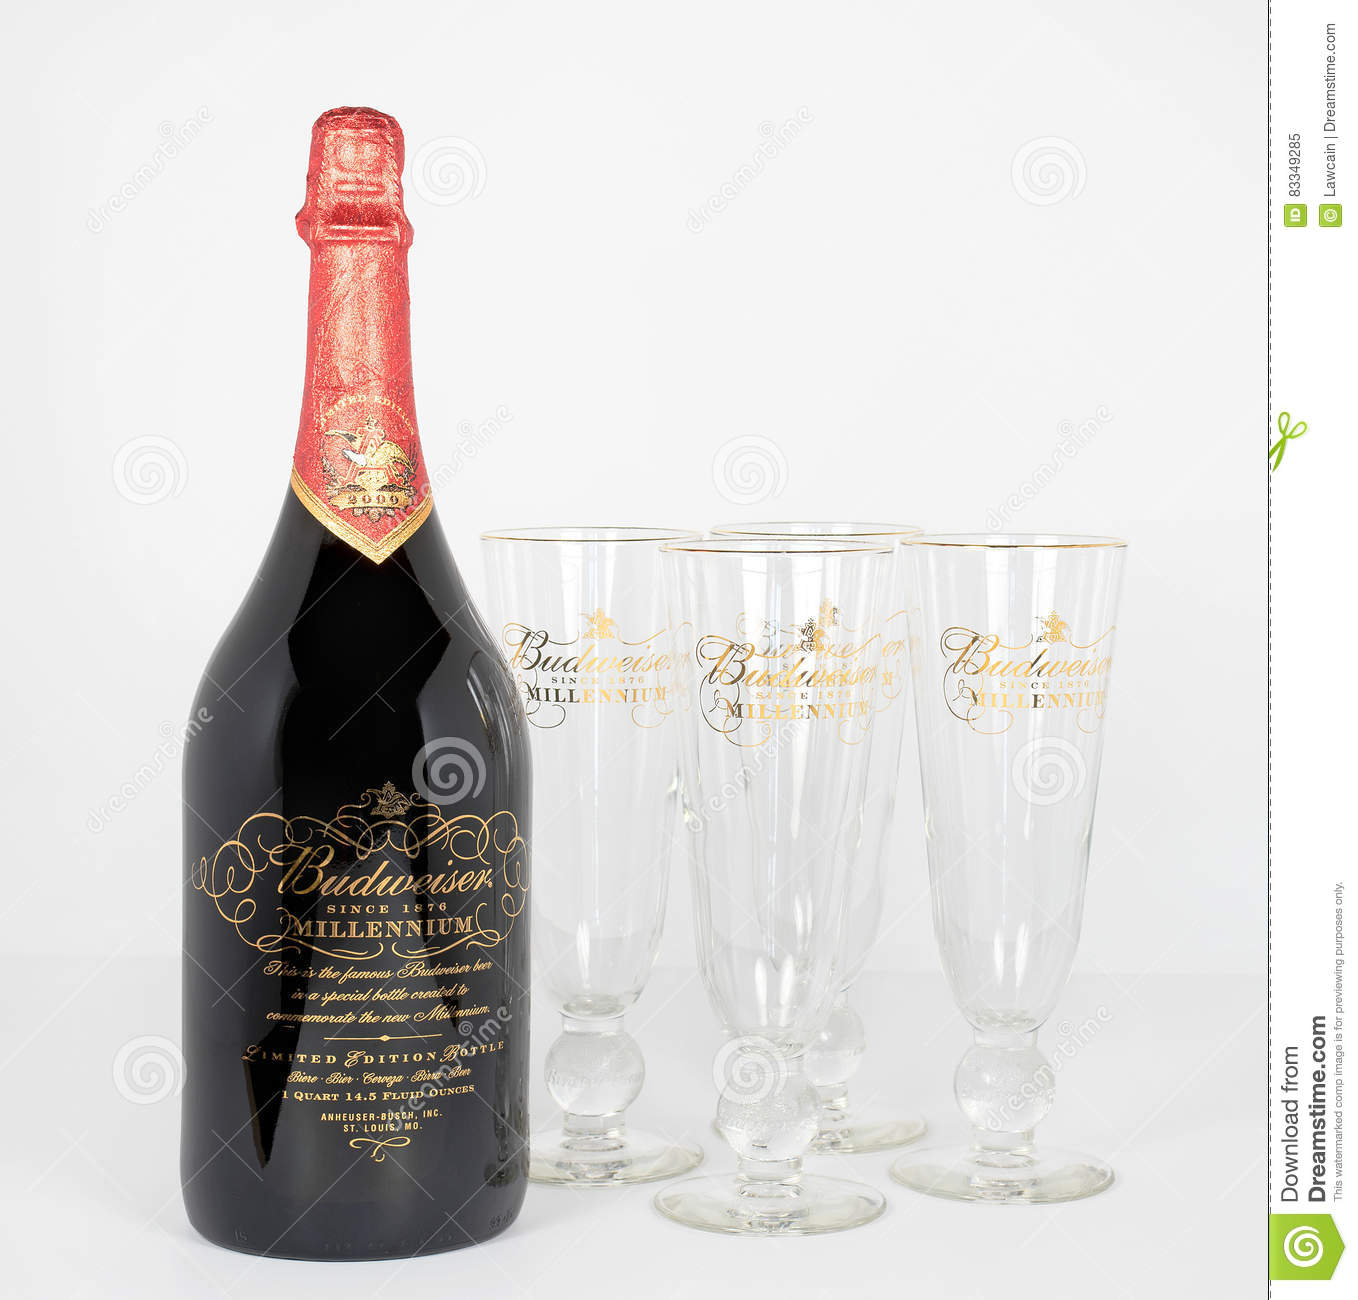 Budweiser Limited Edition Bottle And Four Glasses